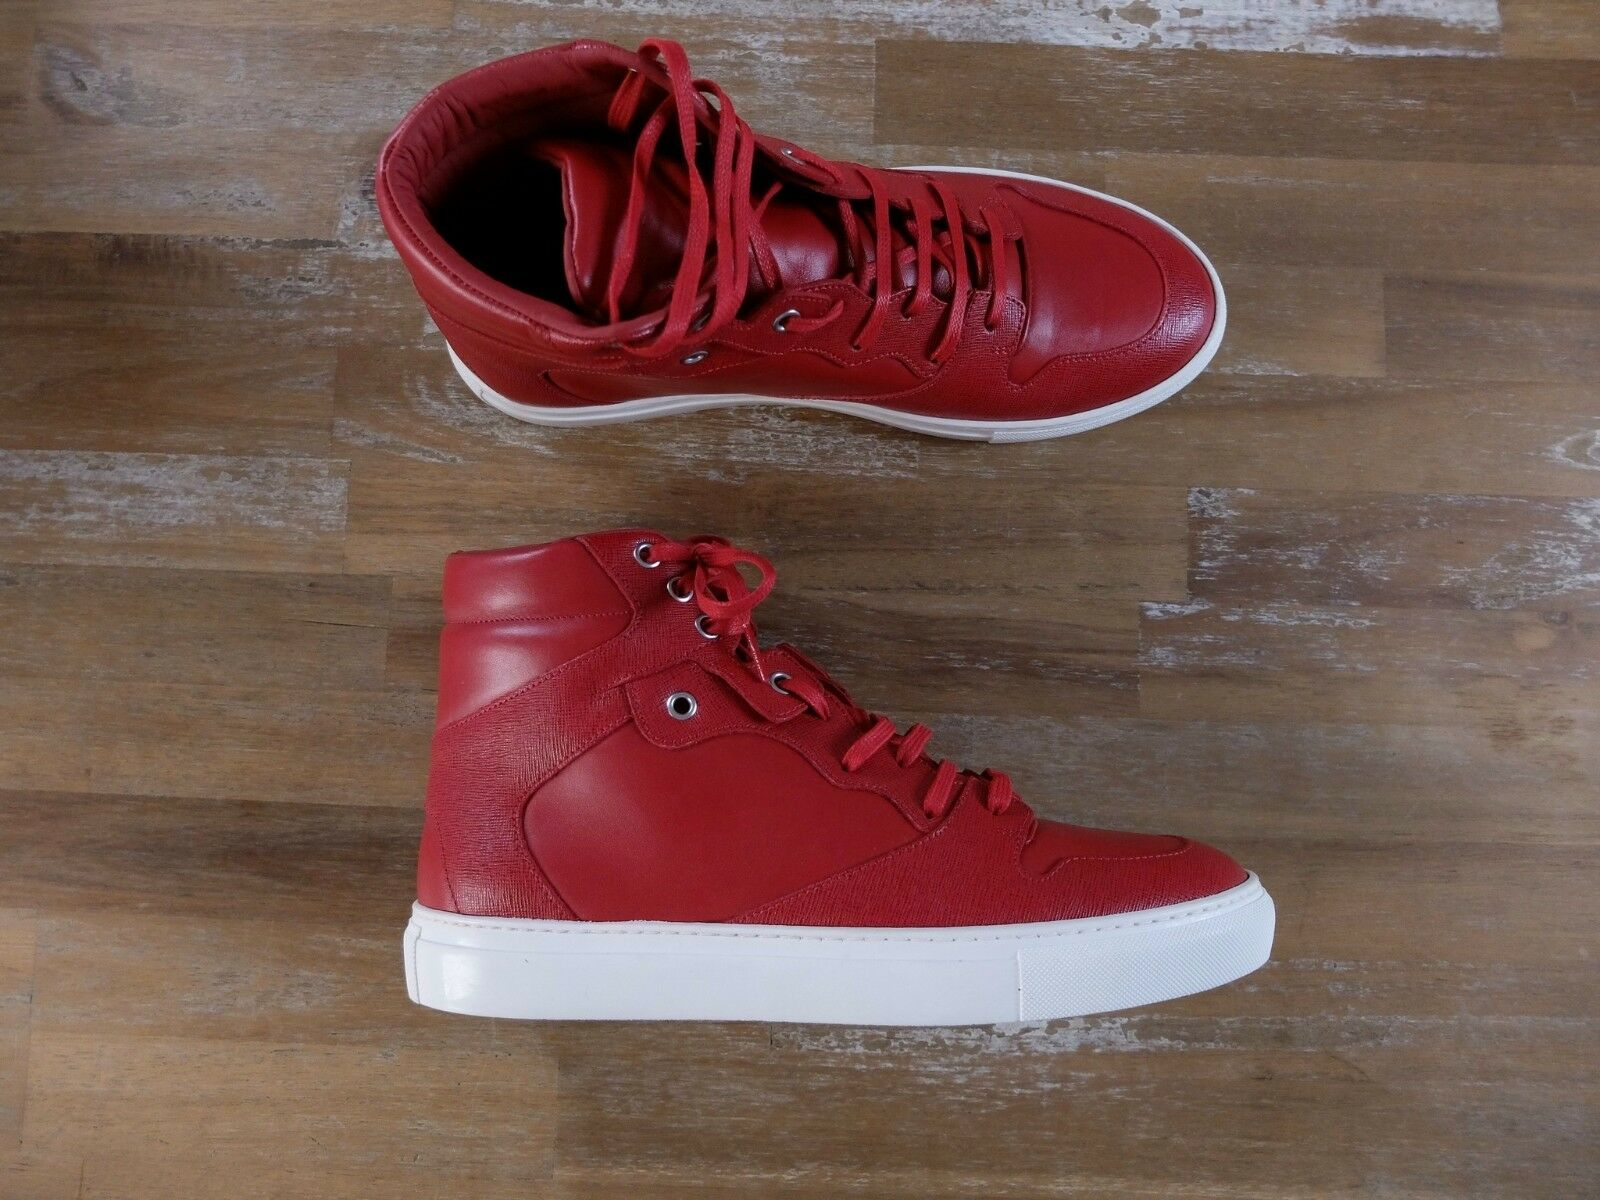 BALENCIAGA high sneakers leather red mens authentic Size 8 US / 41 EU / 7 UK